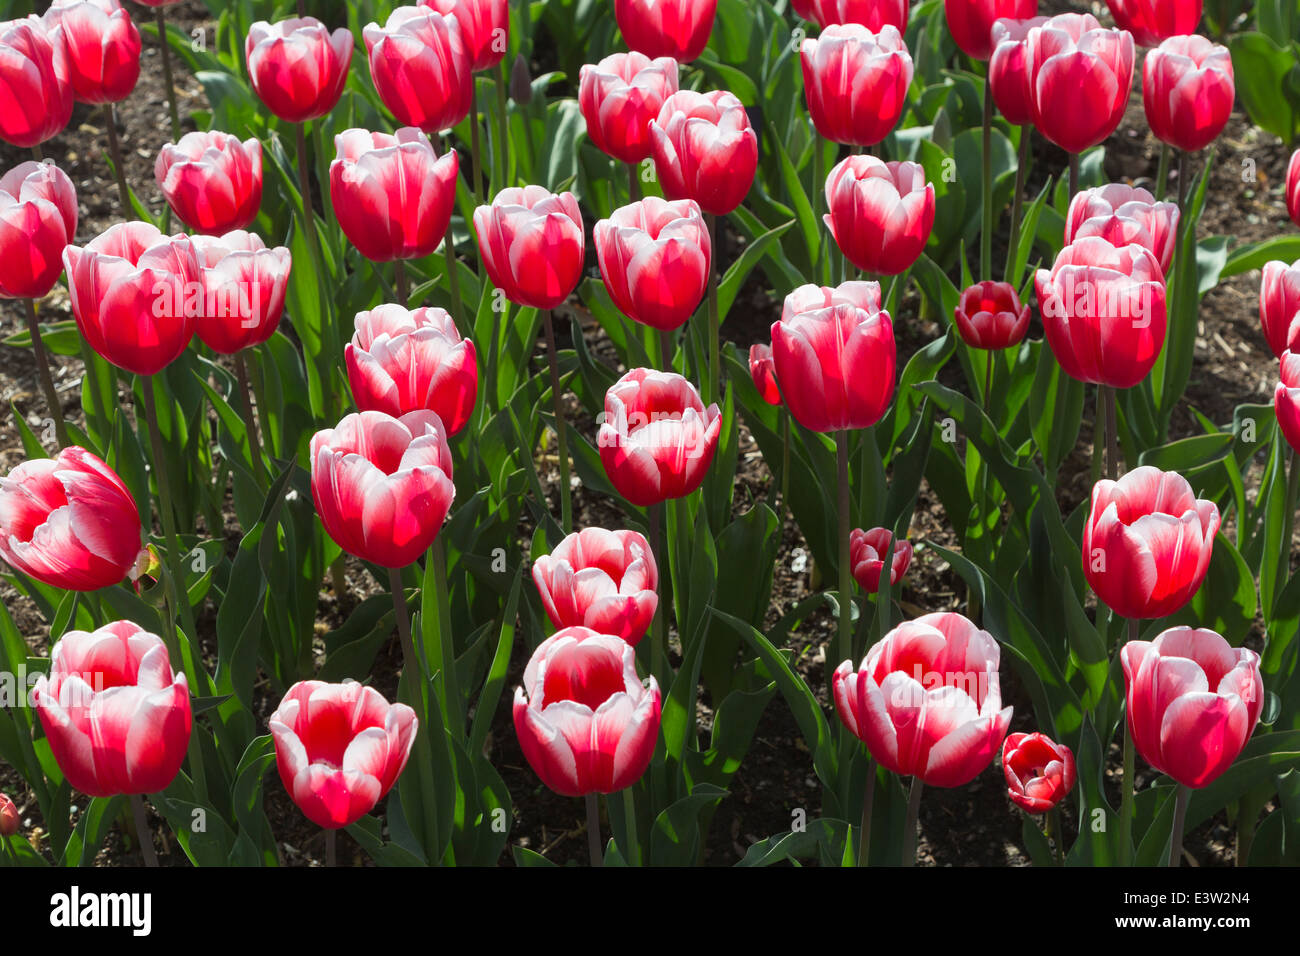 Red and white tulip, 'Timeless' flowering at RHS Wisley, Surrey, UK in springtime - Stock Image